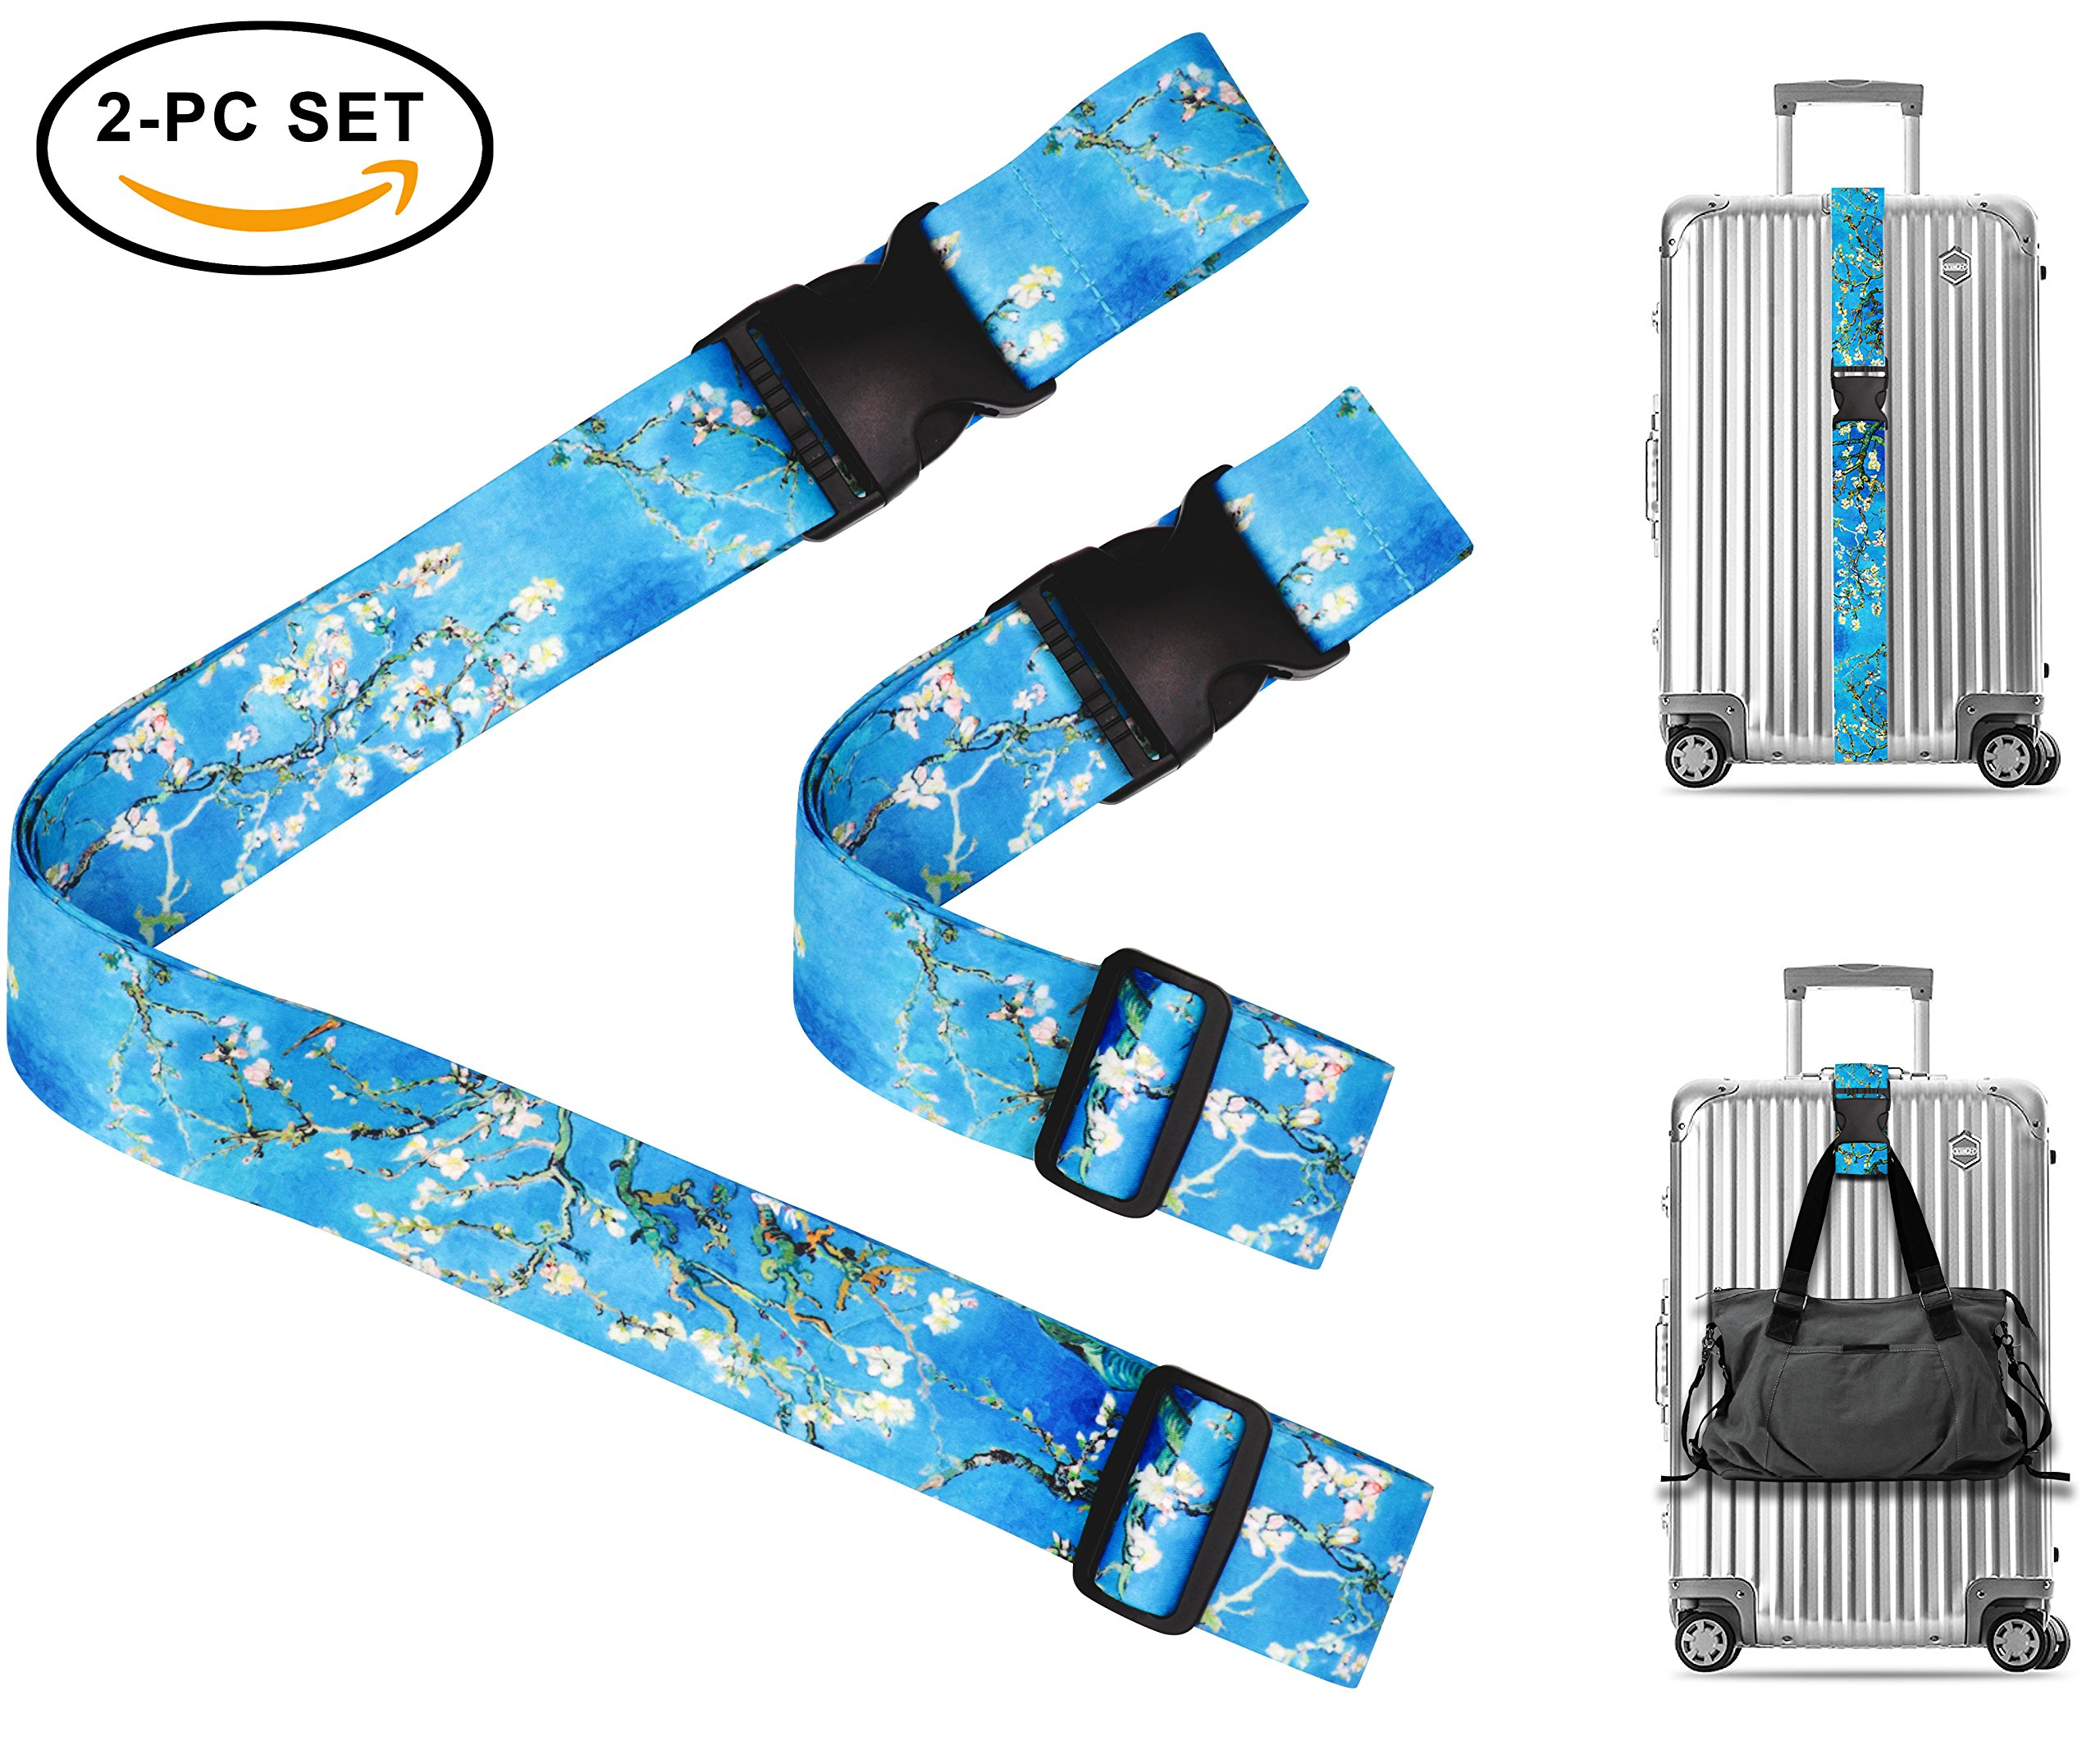 Vincent Van Gogh Almond Blossom Travel Luggage Strap Suitcase Security Belt. Heavy Duty & Adjustable. Must Have Travel Accessories. TSA Compliant. 1 Luggage Strap & 1 Add A Bag Strap. 2-Piece Set.